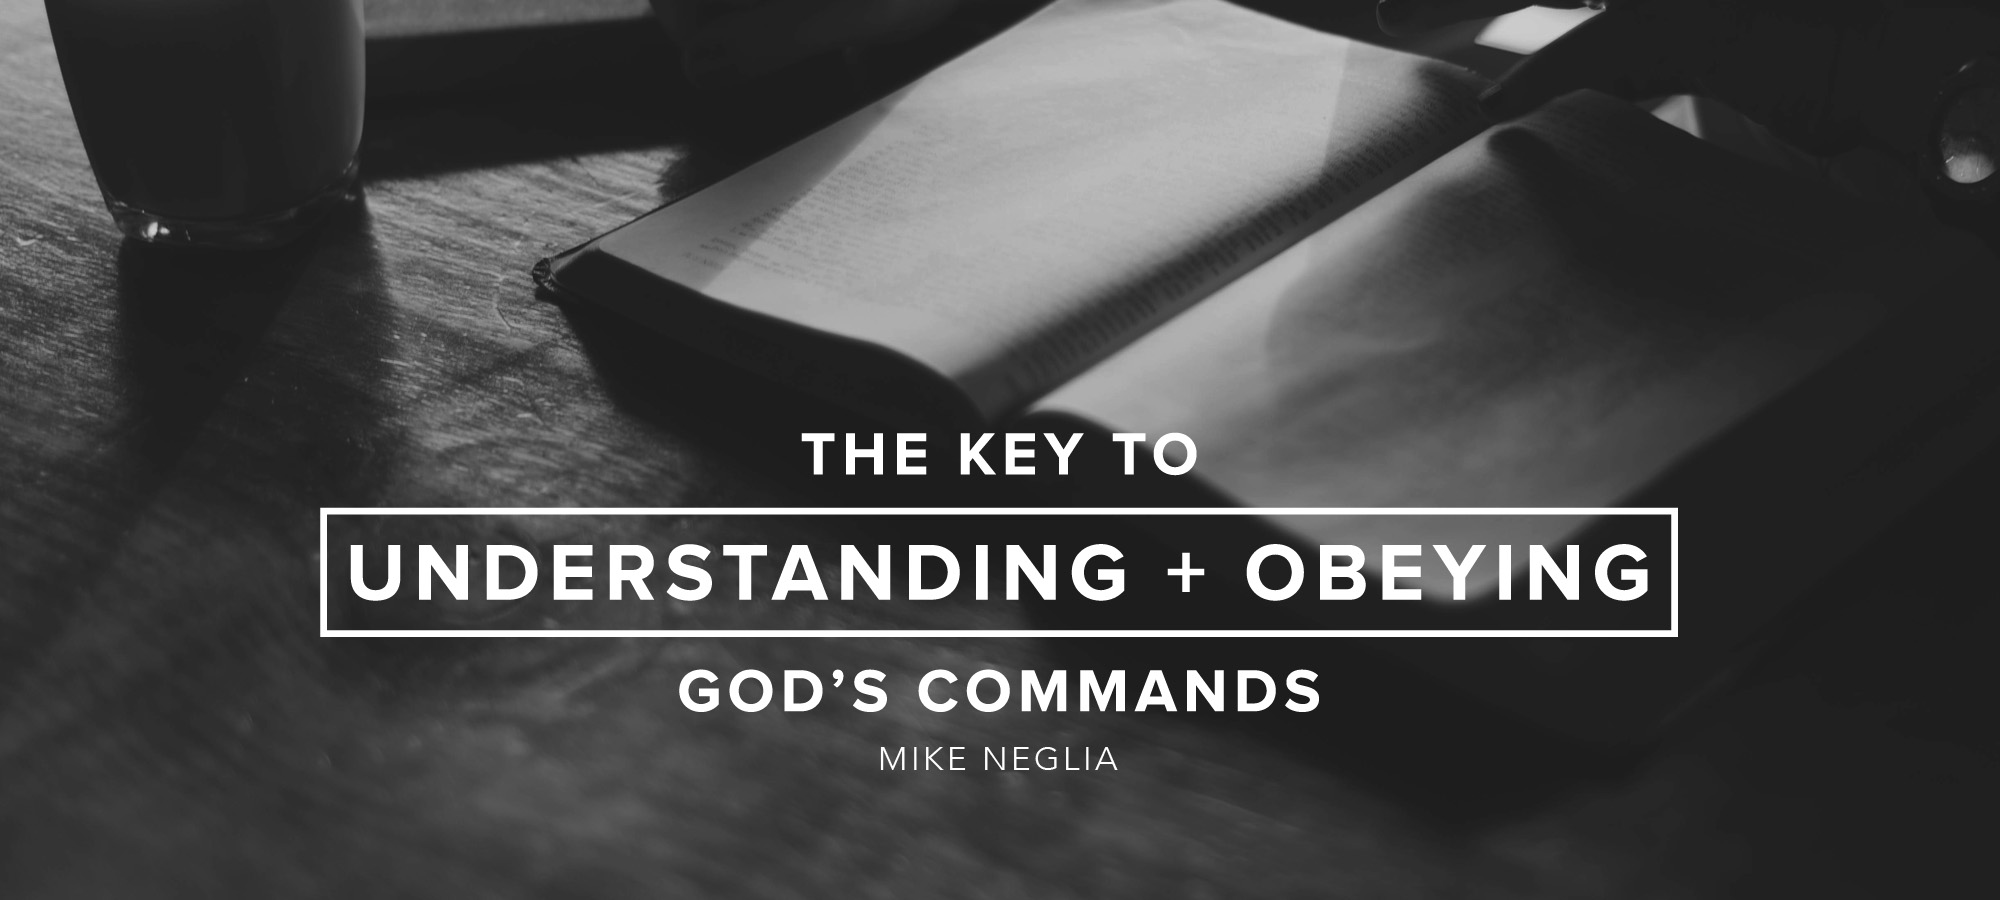 The Key to Understanding & Obeying God's Commands